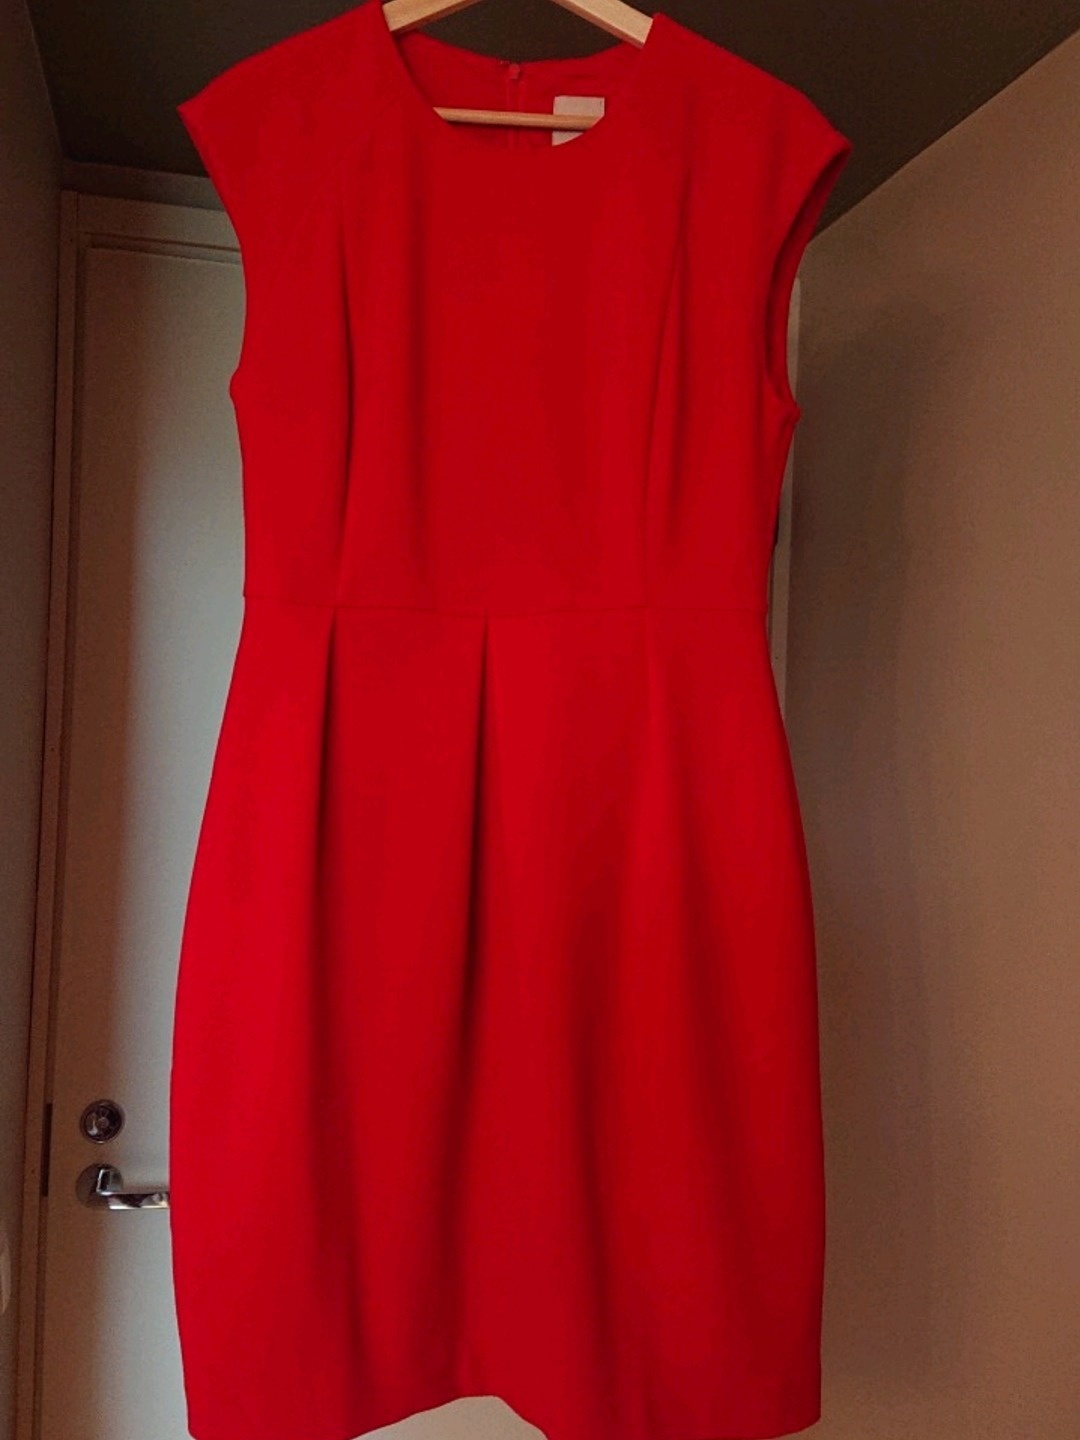 Women's dresses - KIOMI photo 1